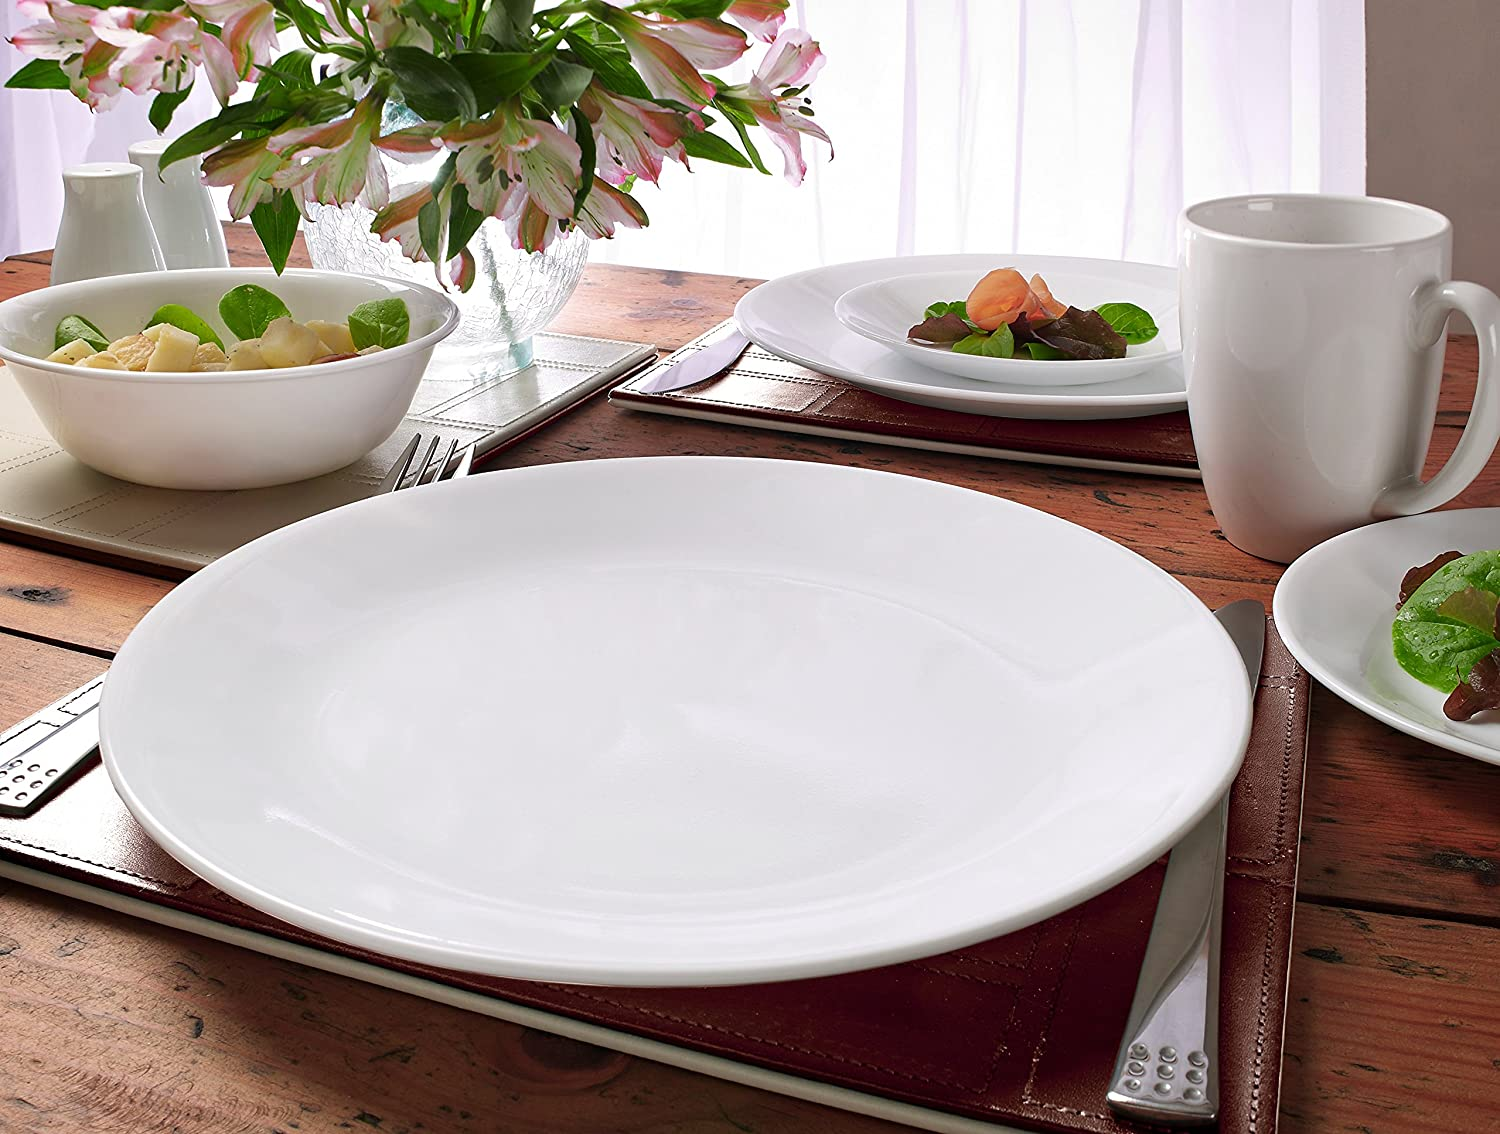 Amazon.com | Corelle 1088656 Livingware Winter Frost White 30-Piece Dinnerware Set Service for 6 Dinnerware Sets : winter dinnerware sets - Pezcame.Com